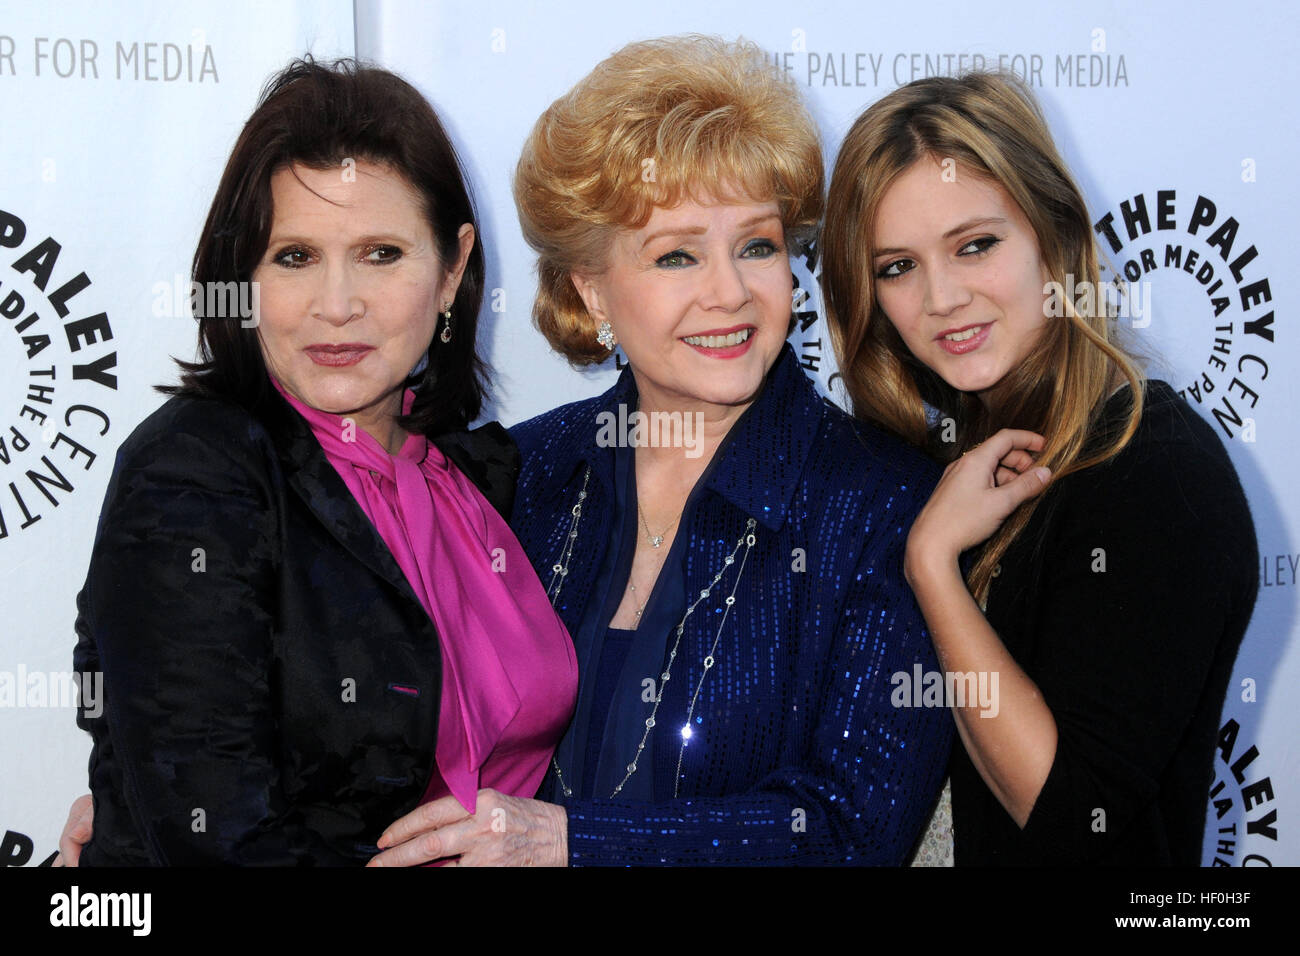 FILE PIC: Beverly Hills, CA, USA. 7th June, 2011. 27 December 2016 - Carrie Fisher, the iconic actress who portrayed - Stock Image